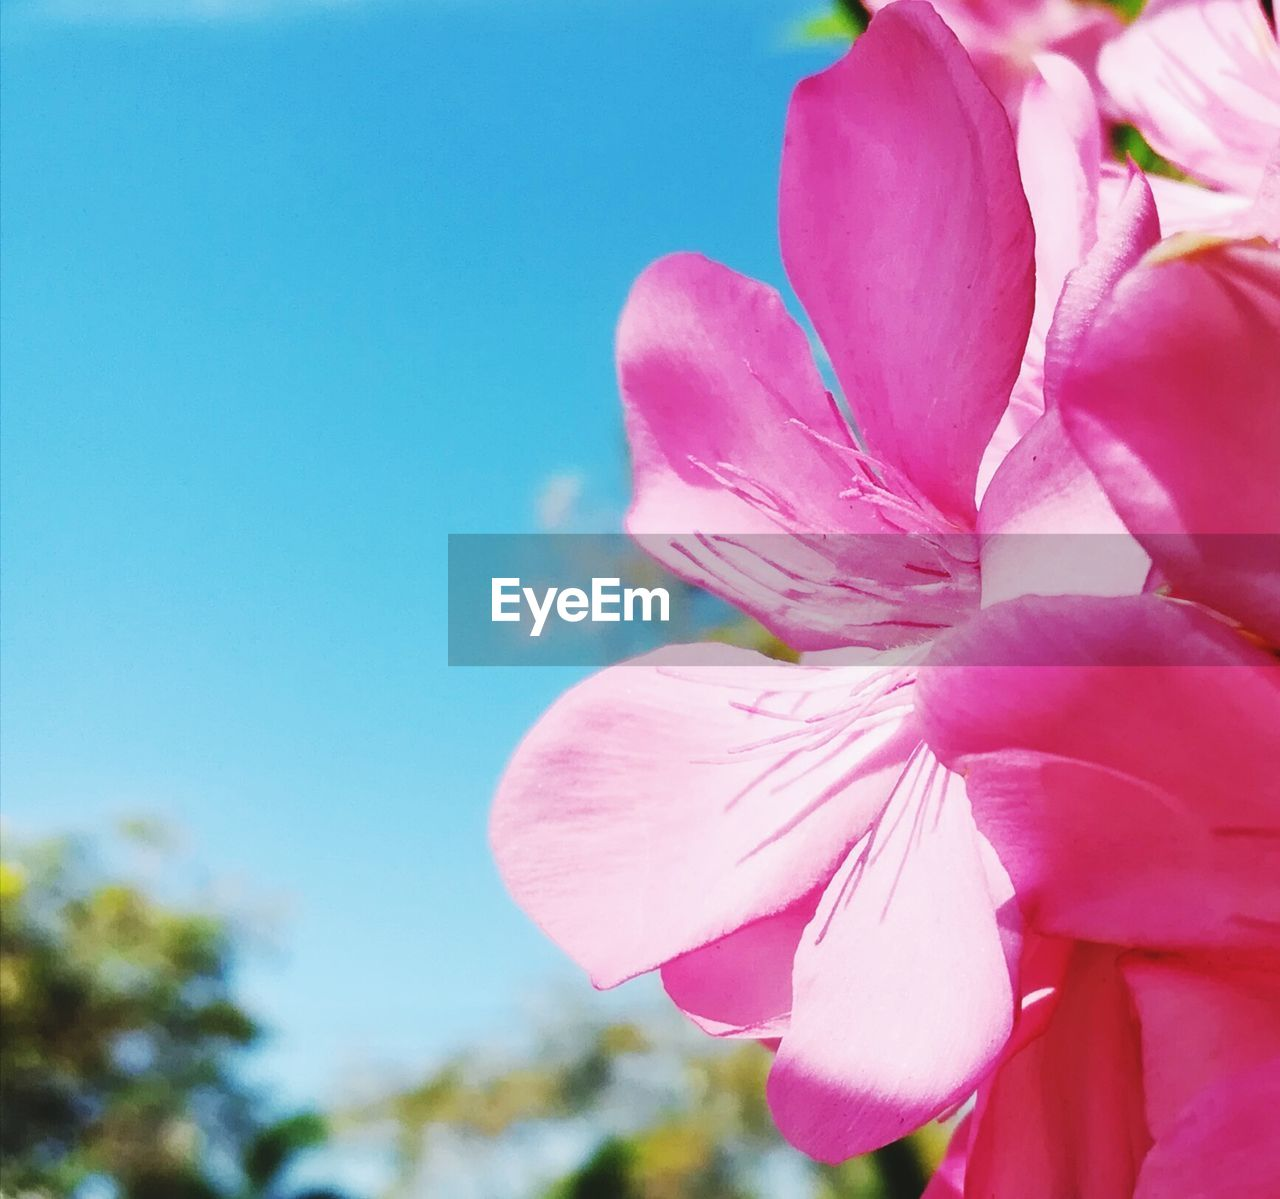 flower, petal, pink color, beauty in nature, fragility, nature, flower head, day, growth, freshness, outdoors, no people, close-up, blossom, springtime, plant, blooming, clear sky, sky